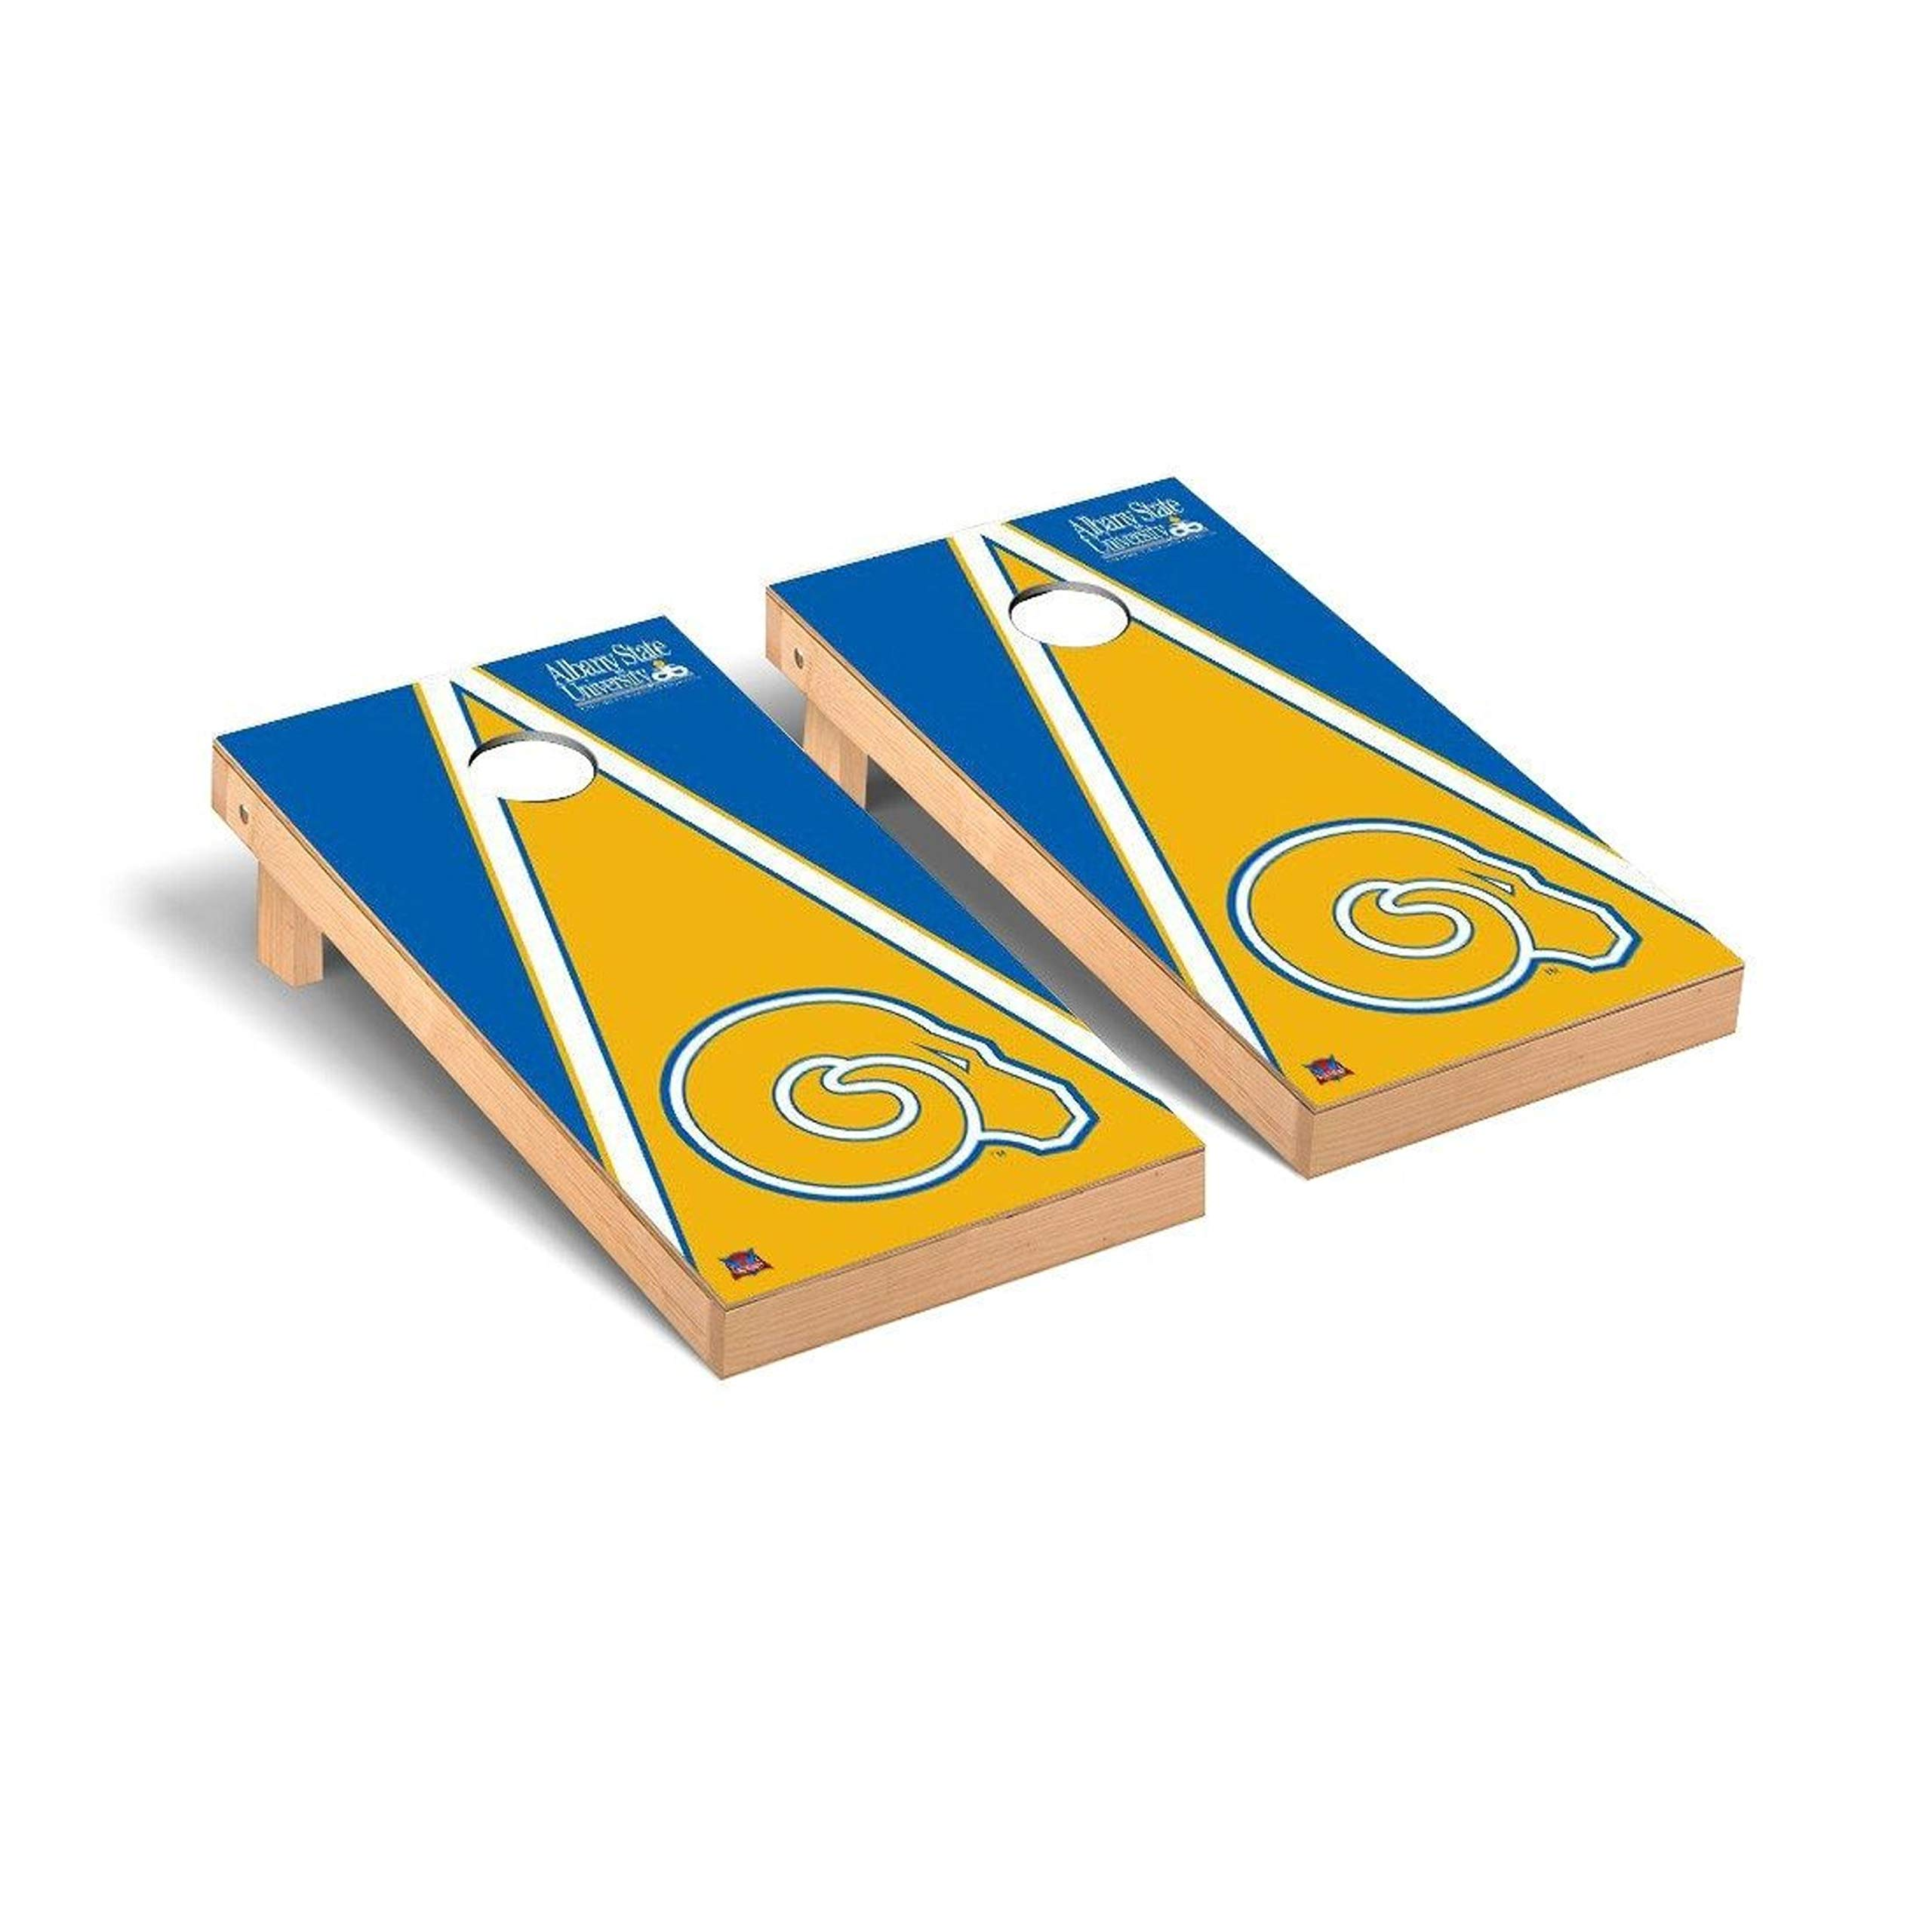 Victory Tailgate Regulation Collegiate NCAA Triangle Series Cornhole Board Set - 2 Boards, 8 Bags - Albany State Golden Rams